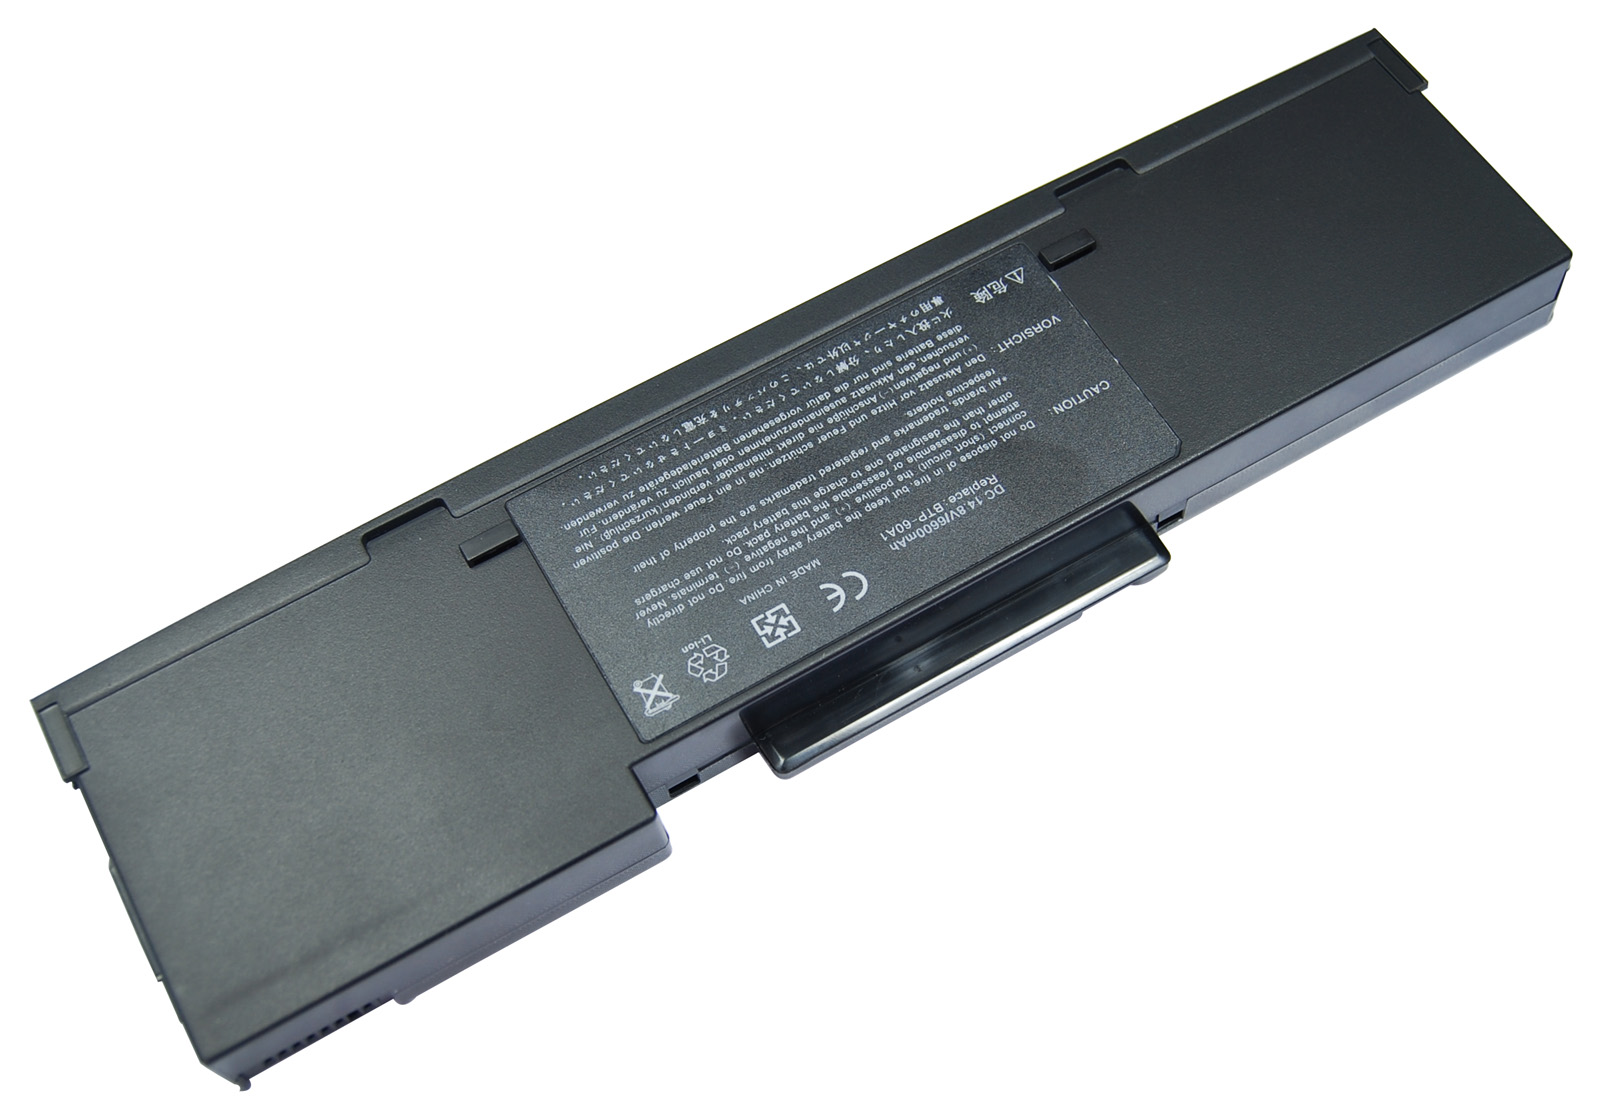 Acer Aspire 1360 Driver for Windows 7